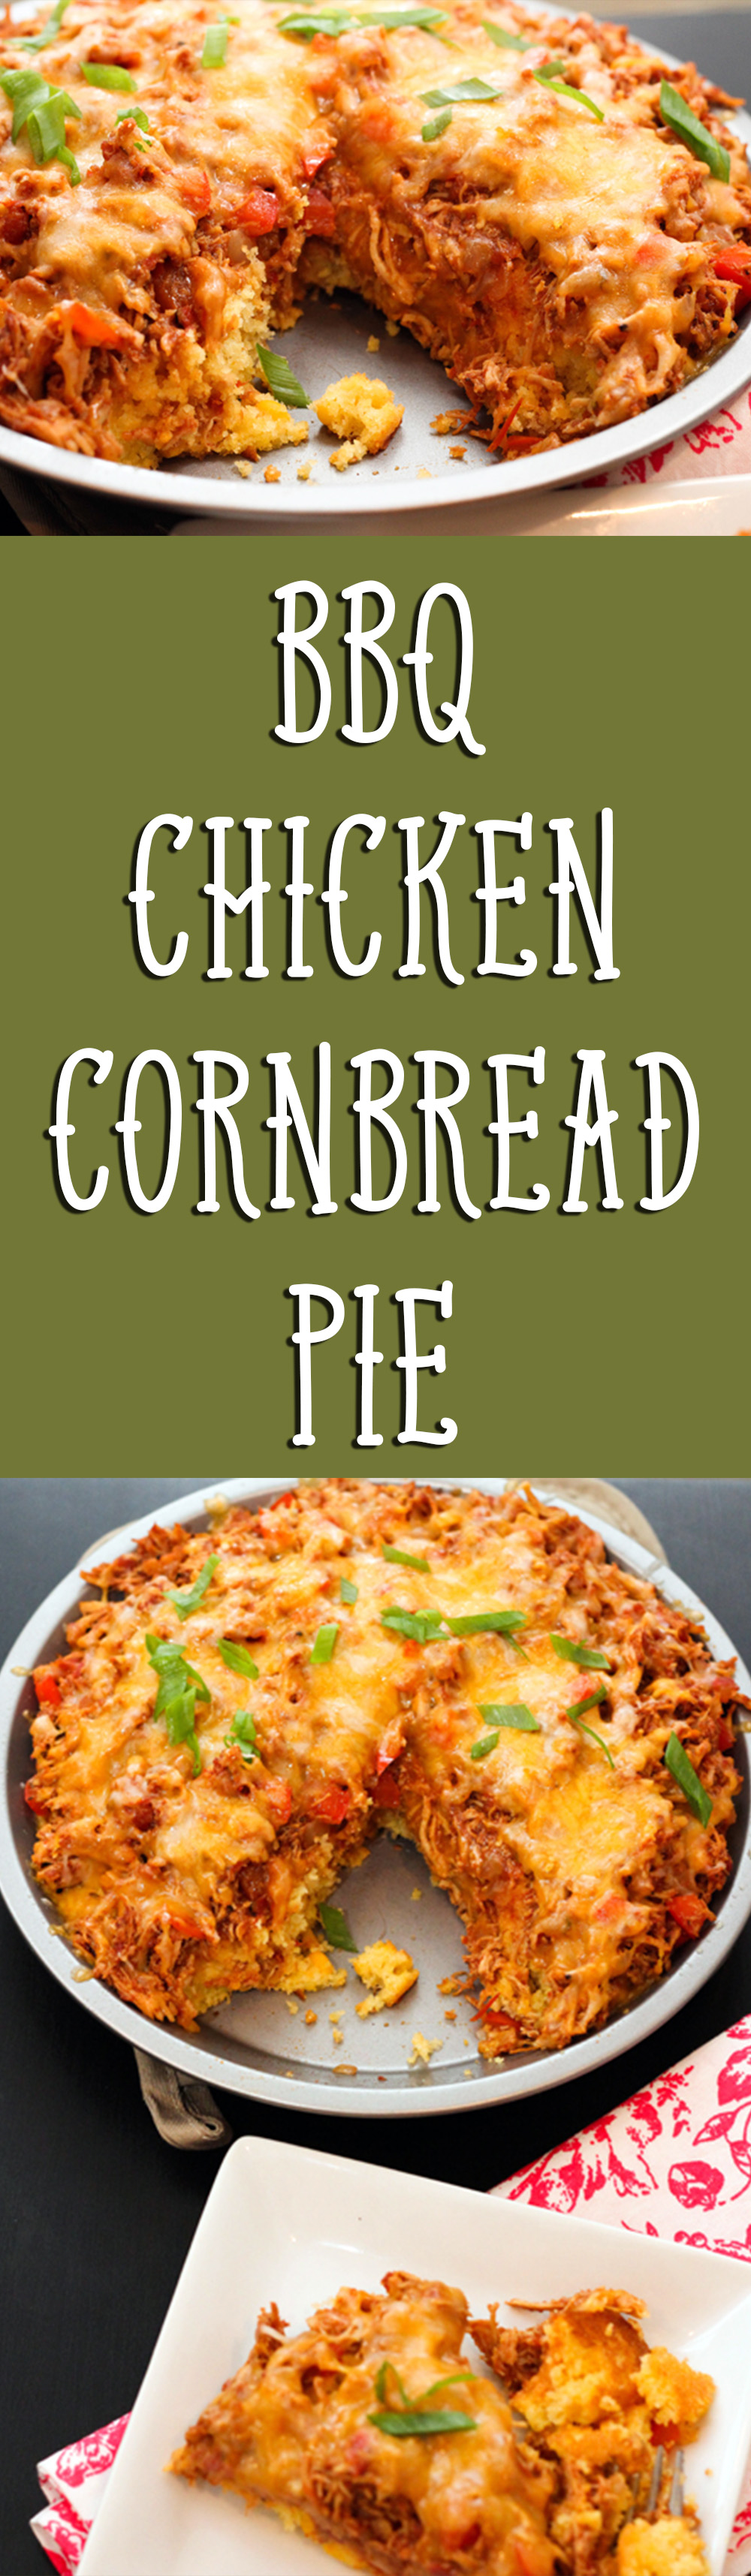 You're going to want to make room for this BBQ chicken cornbread pie! This is one epic dish!